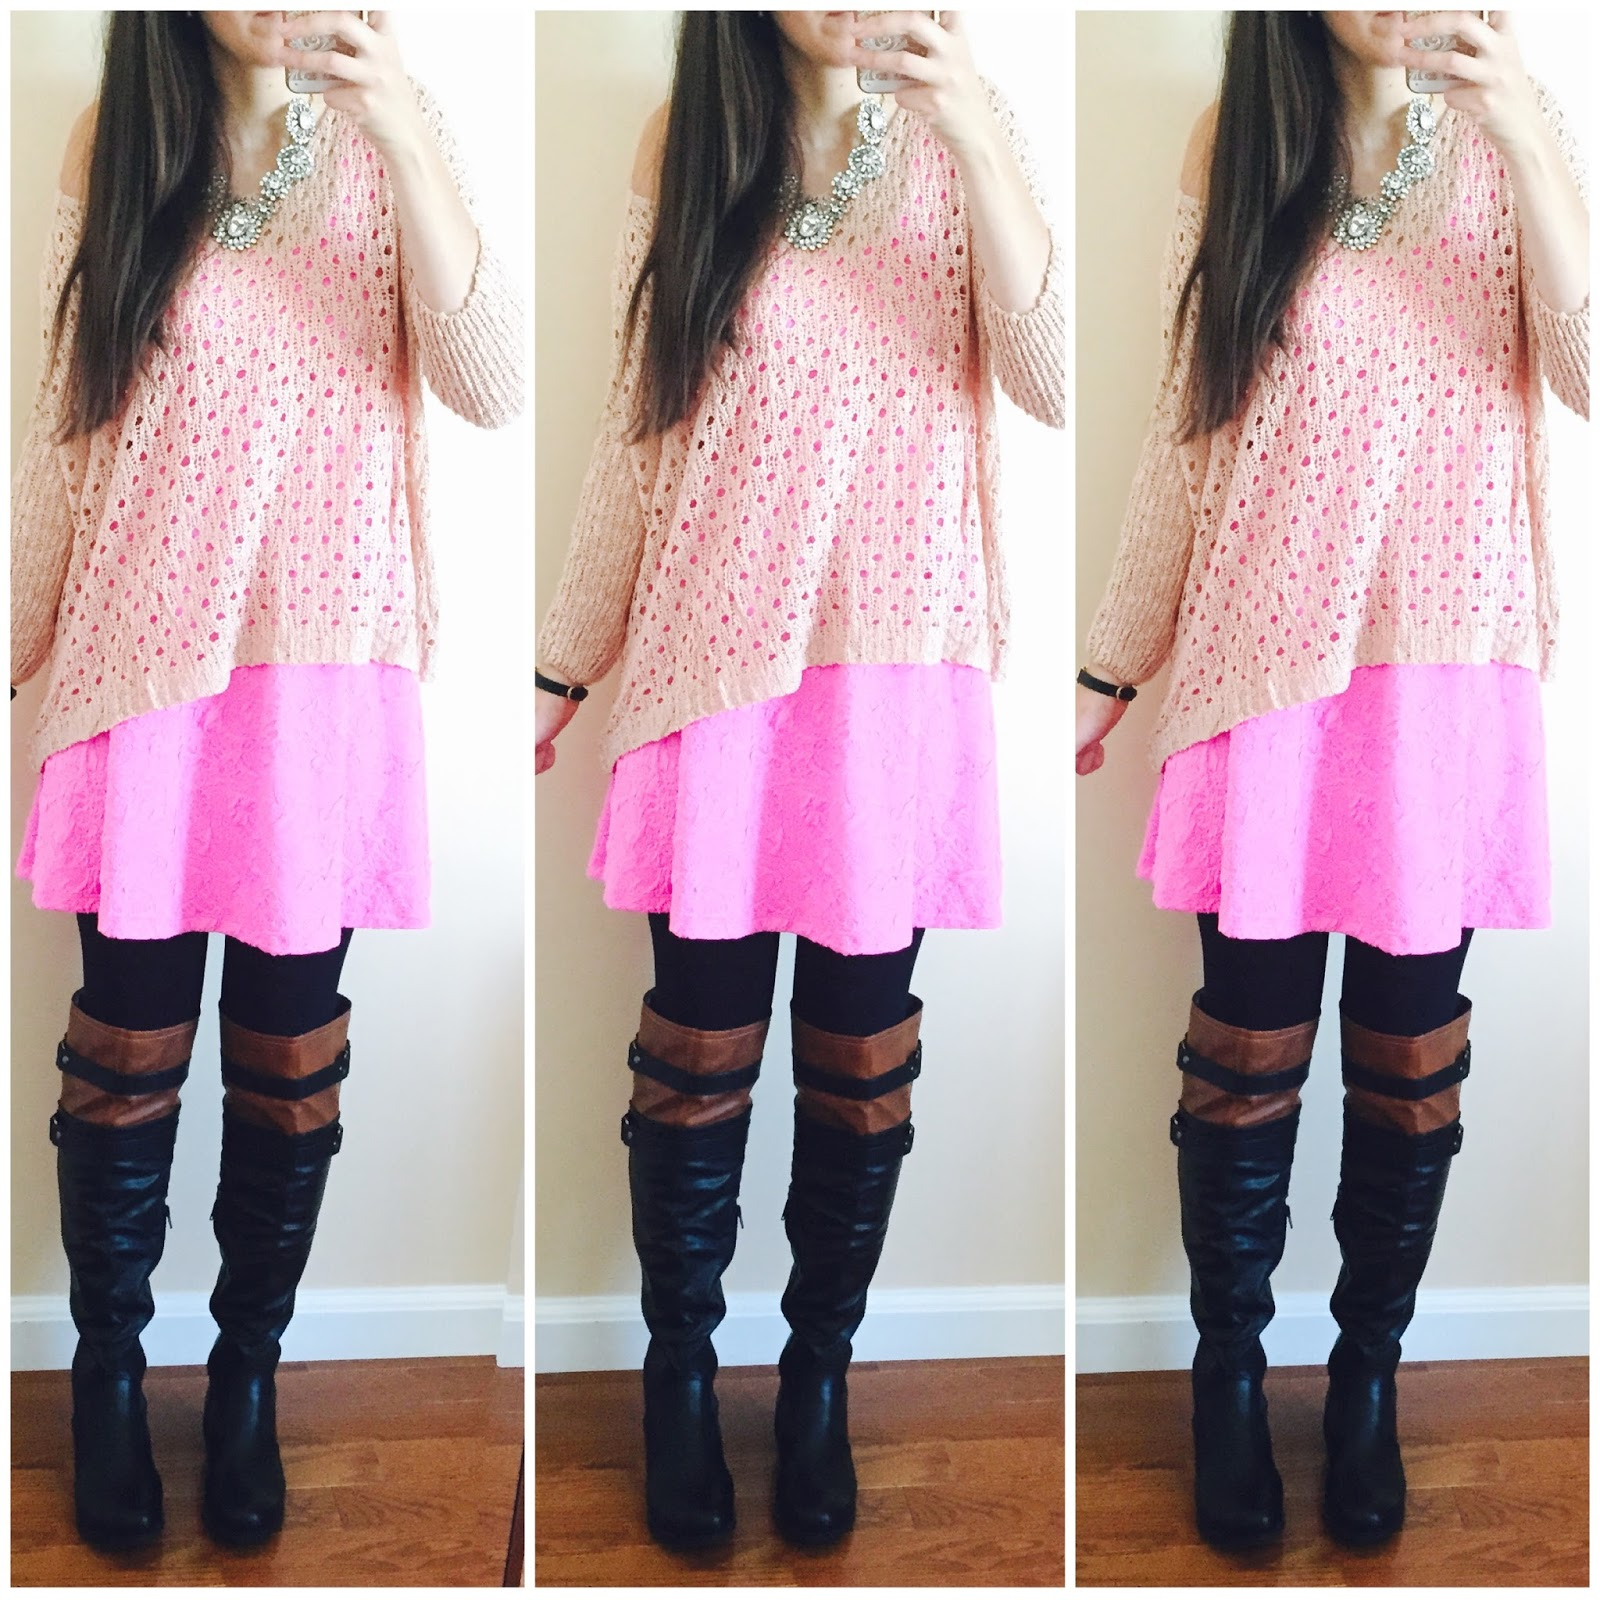 20 ways to style a pink dress, pink blush, pink dress with a sweater over it, knit sweater, brown over the knee boots, amiclubwear, fall outfit, how to style a dress for fall with boots,  two toned over the knee boots, pink knit sweater over a pink dress, how to style a knit sweater, fall to winter outfit, winter outfit,